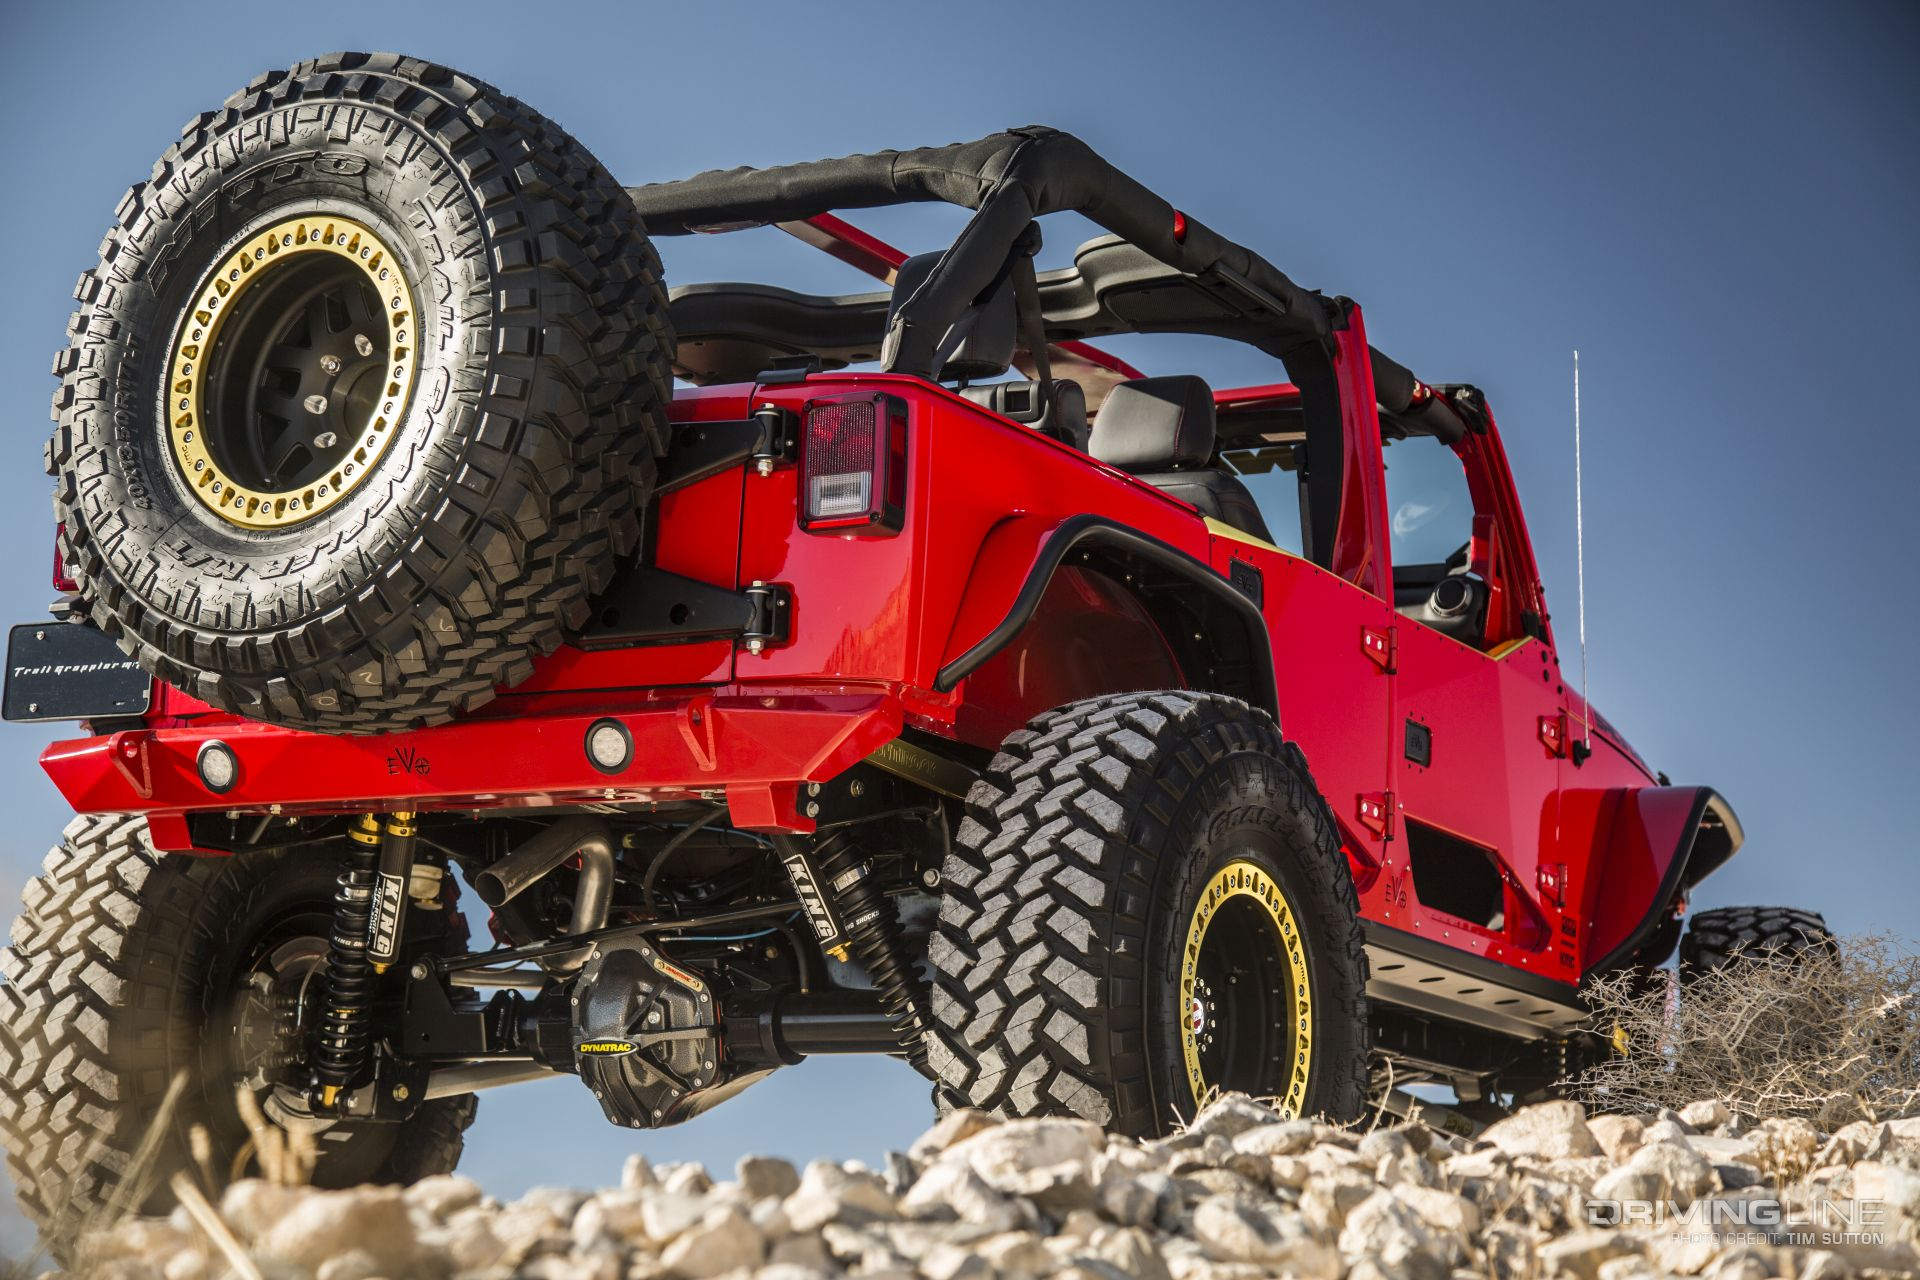 Spicy Chicken An EVO Built 2017 Jeep Wrangler Unlimited